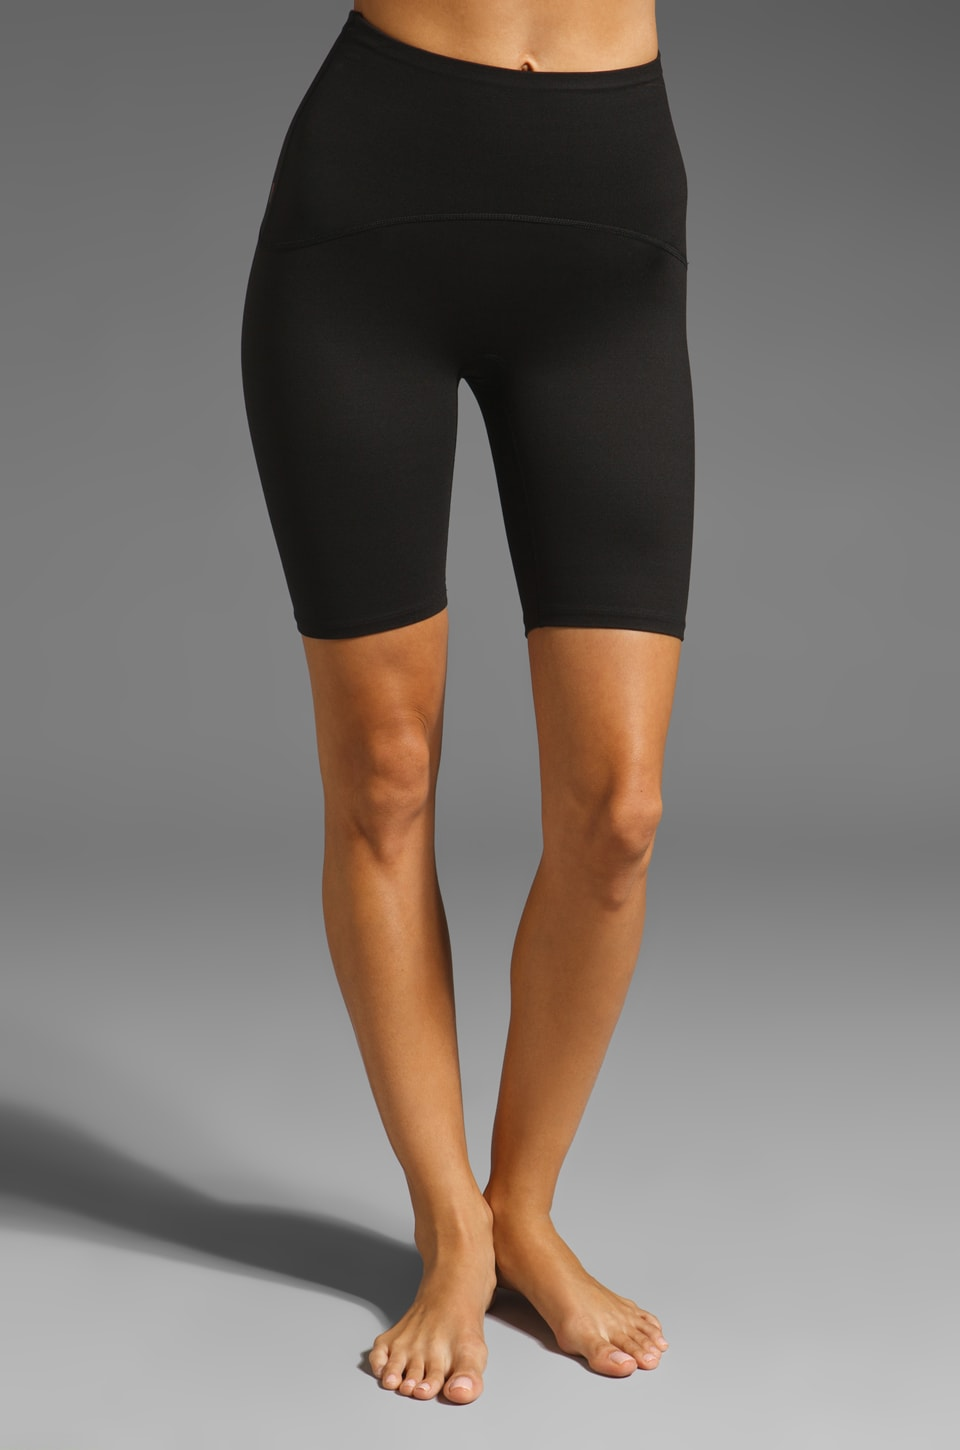 SPANX Shaping Compression Short in Black